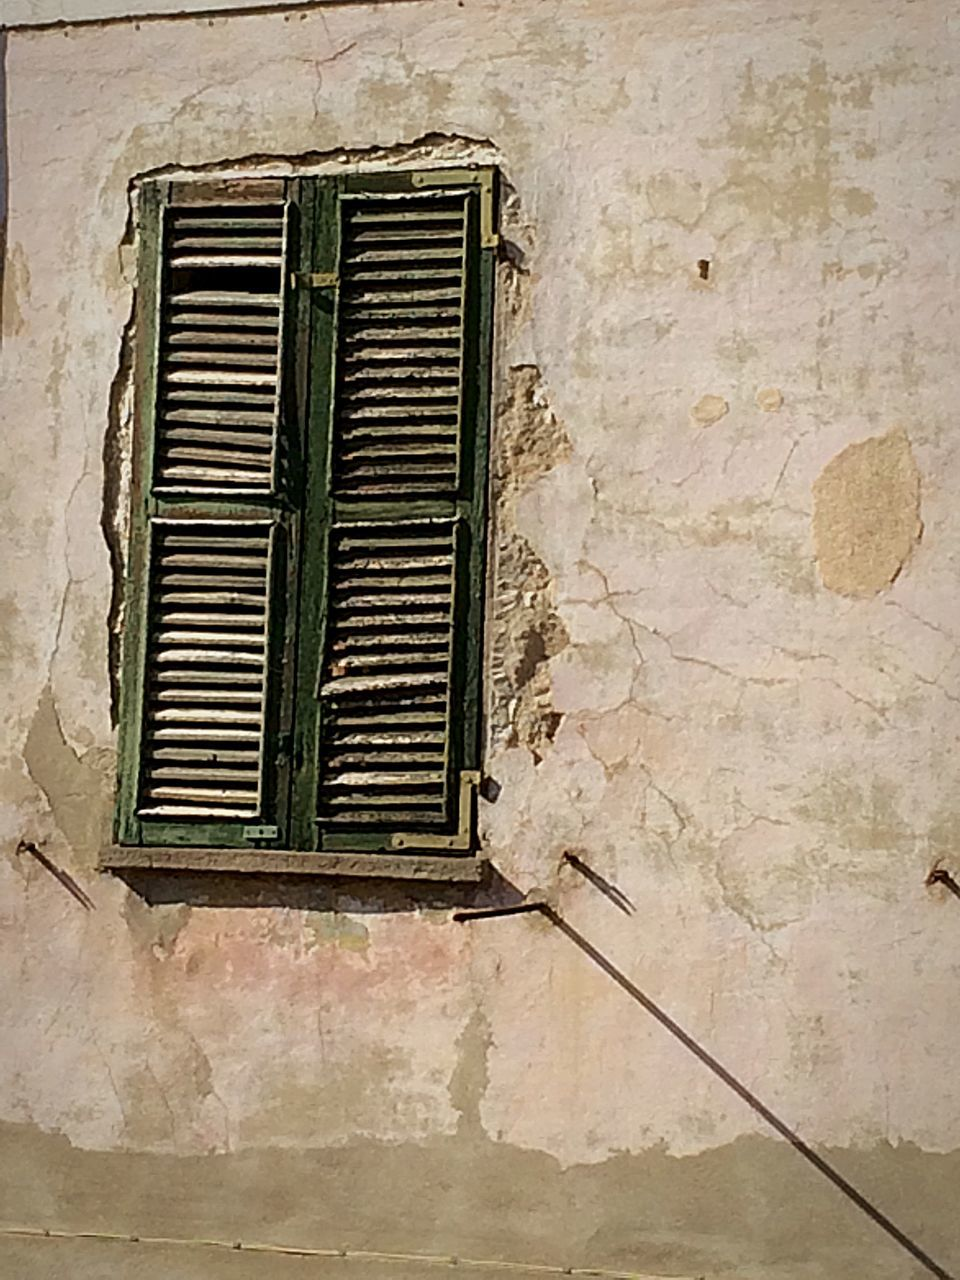 window, wall - building feature, architecture, built structure, air duct, building exterior, weathered, no people, day, metal grate, outdoors, close-up